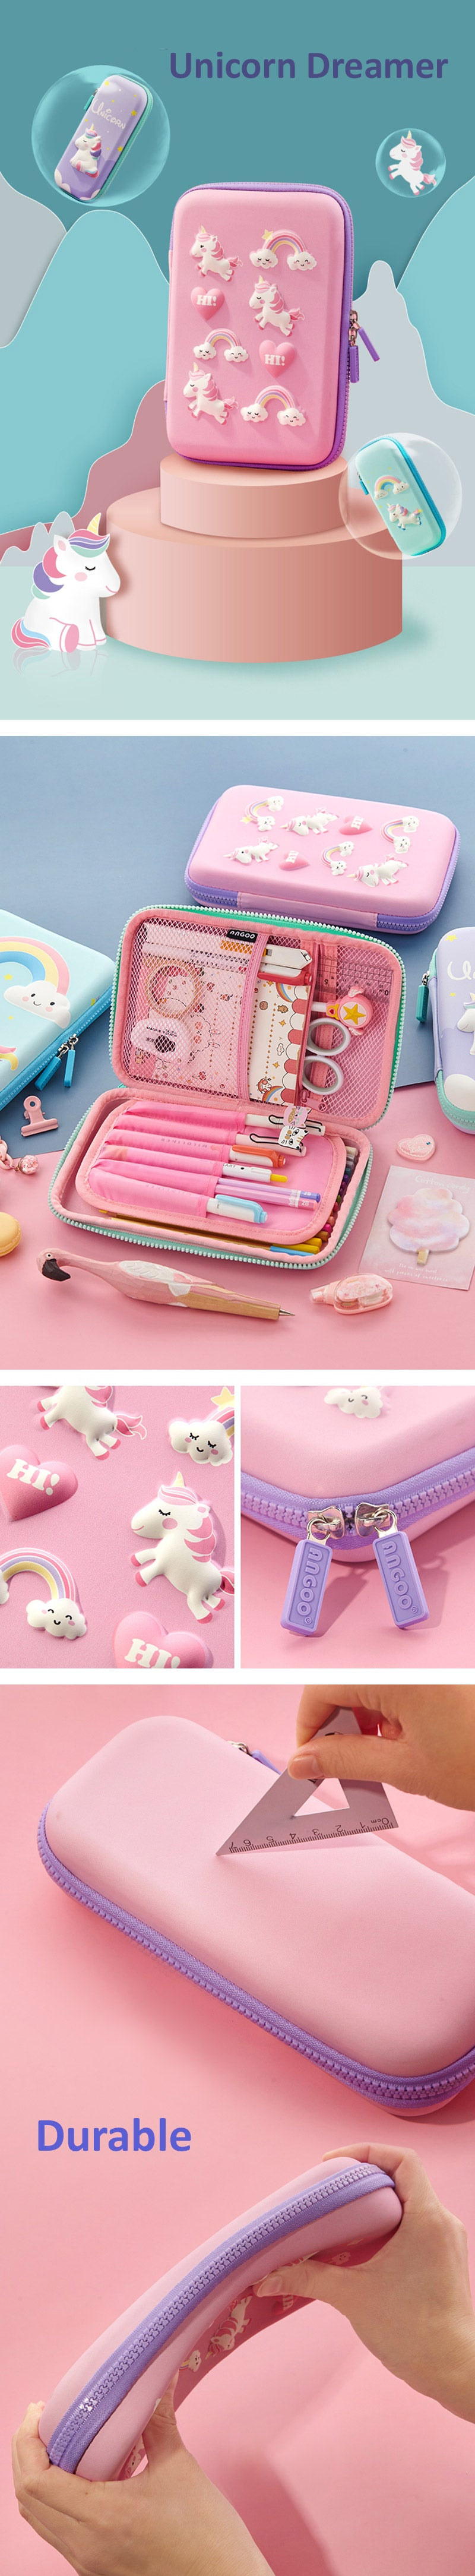 Large Zippered Unicorn Dinosaur Hardtop Organizer Pencil Case - Detail